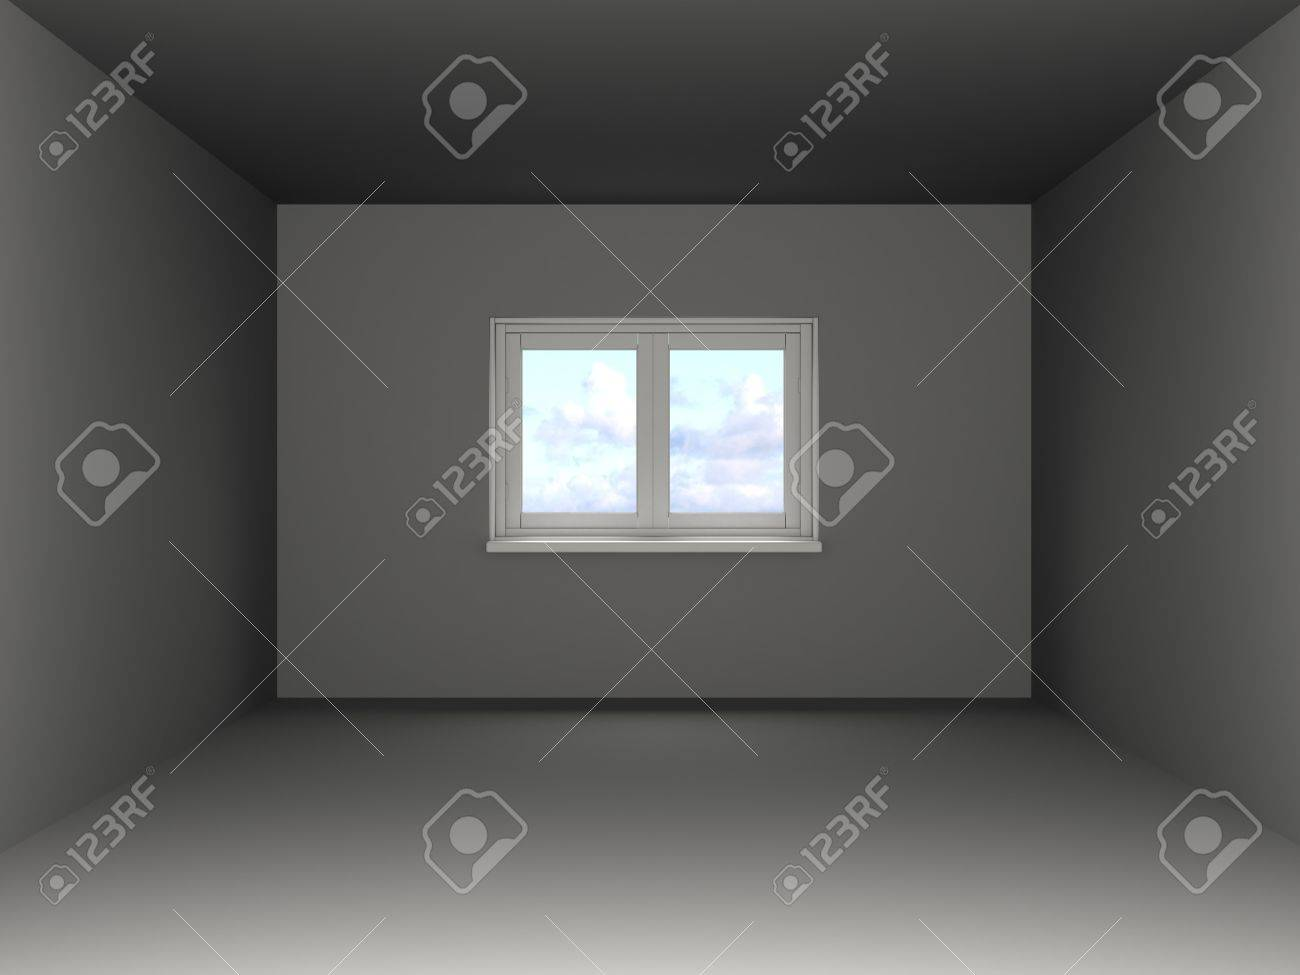 3d illustration of empty room template Stock Photo - 9187188